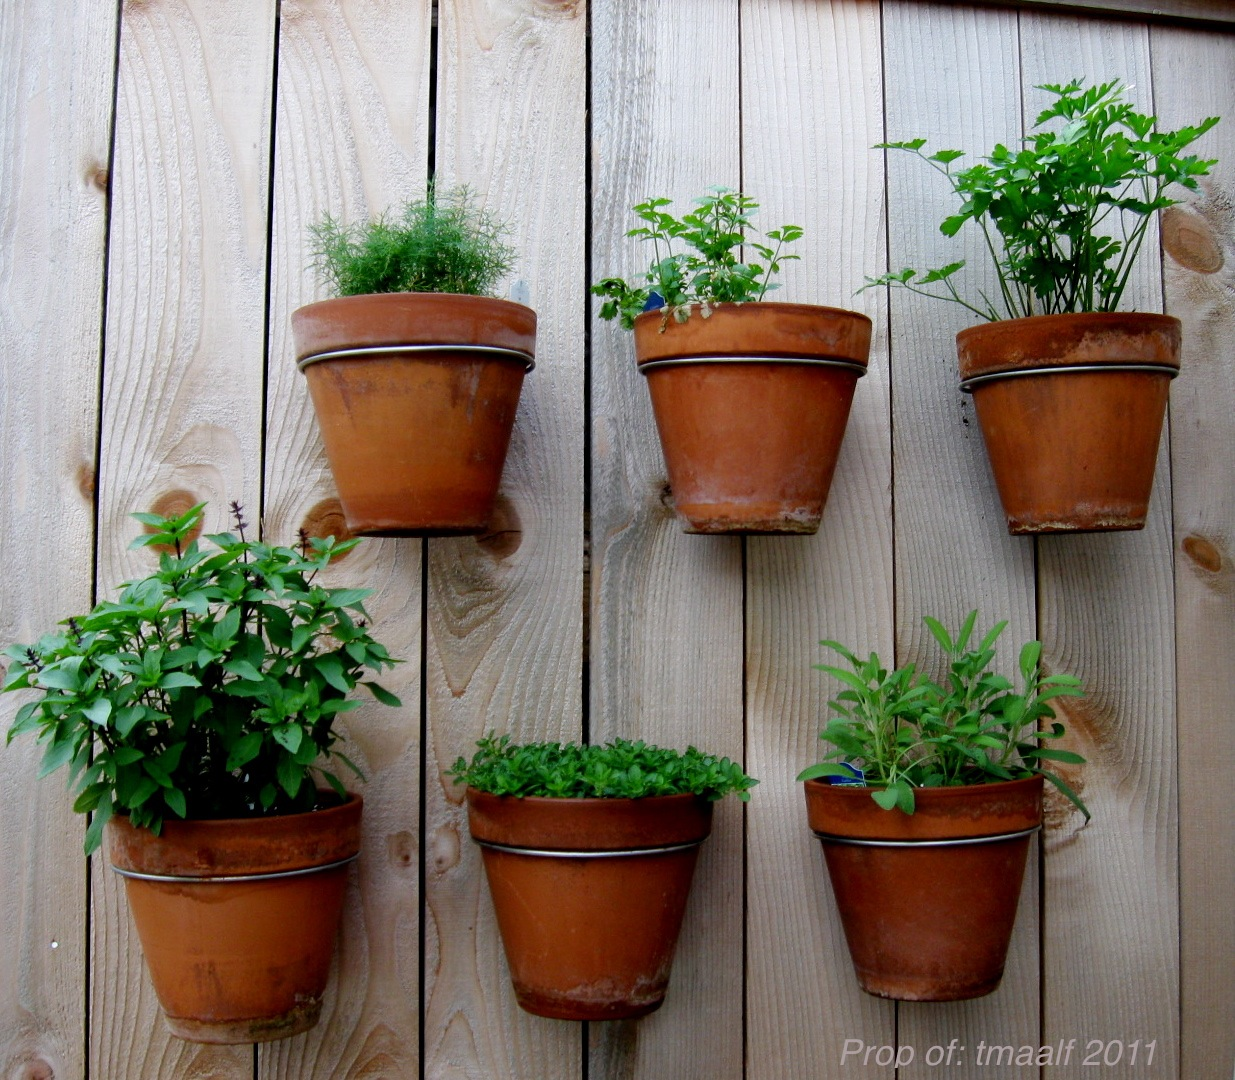 Herb Garden On Fence: Two Men And A Little Farm: CREATIVE GARDENING IN THE CITY